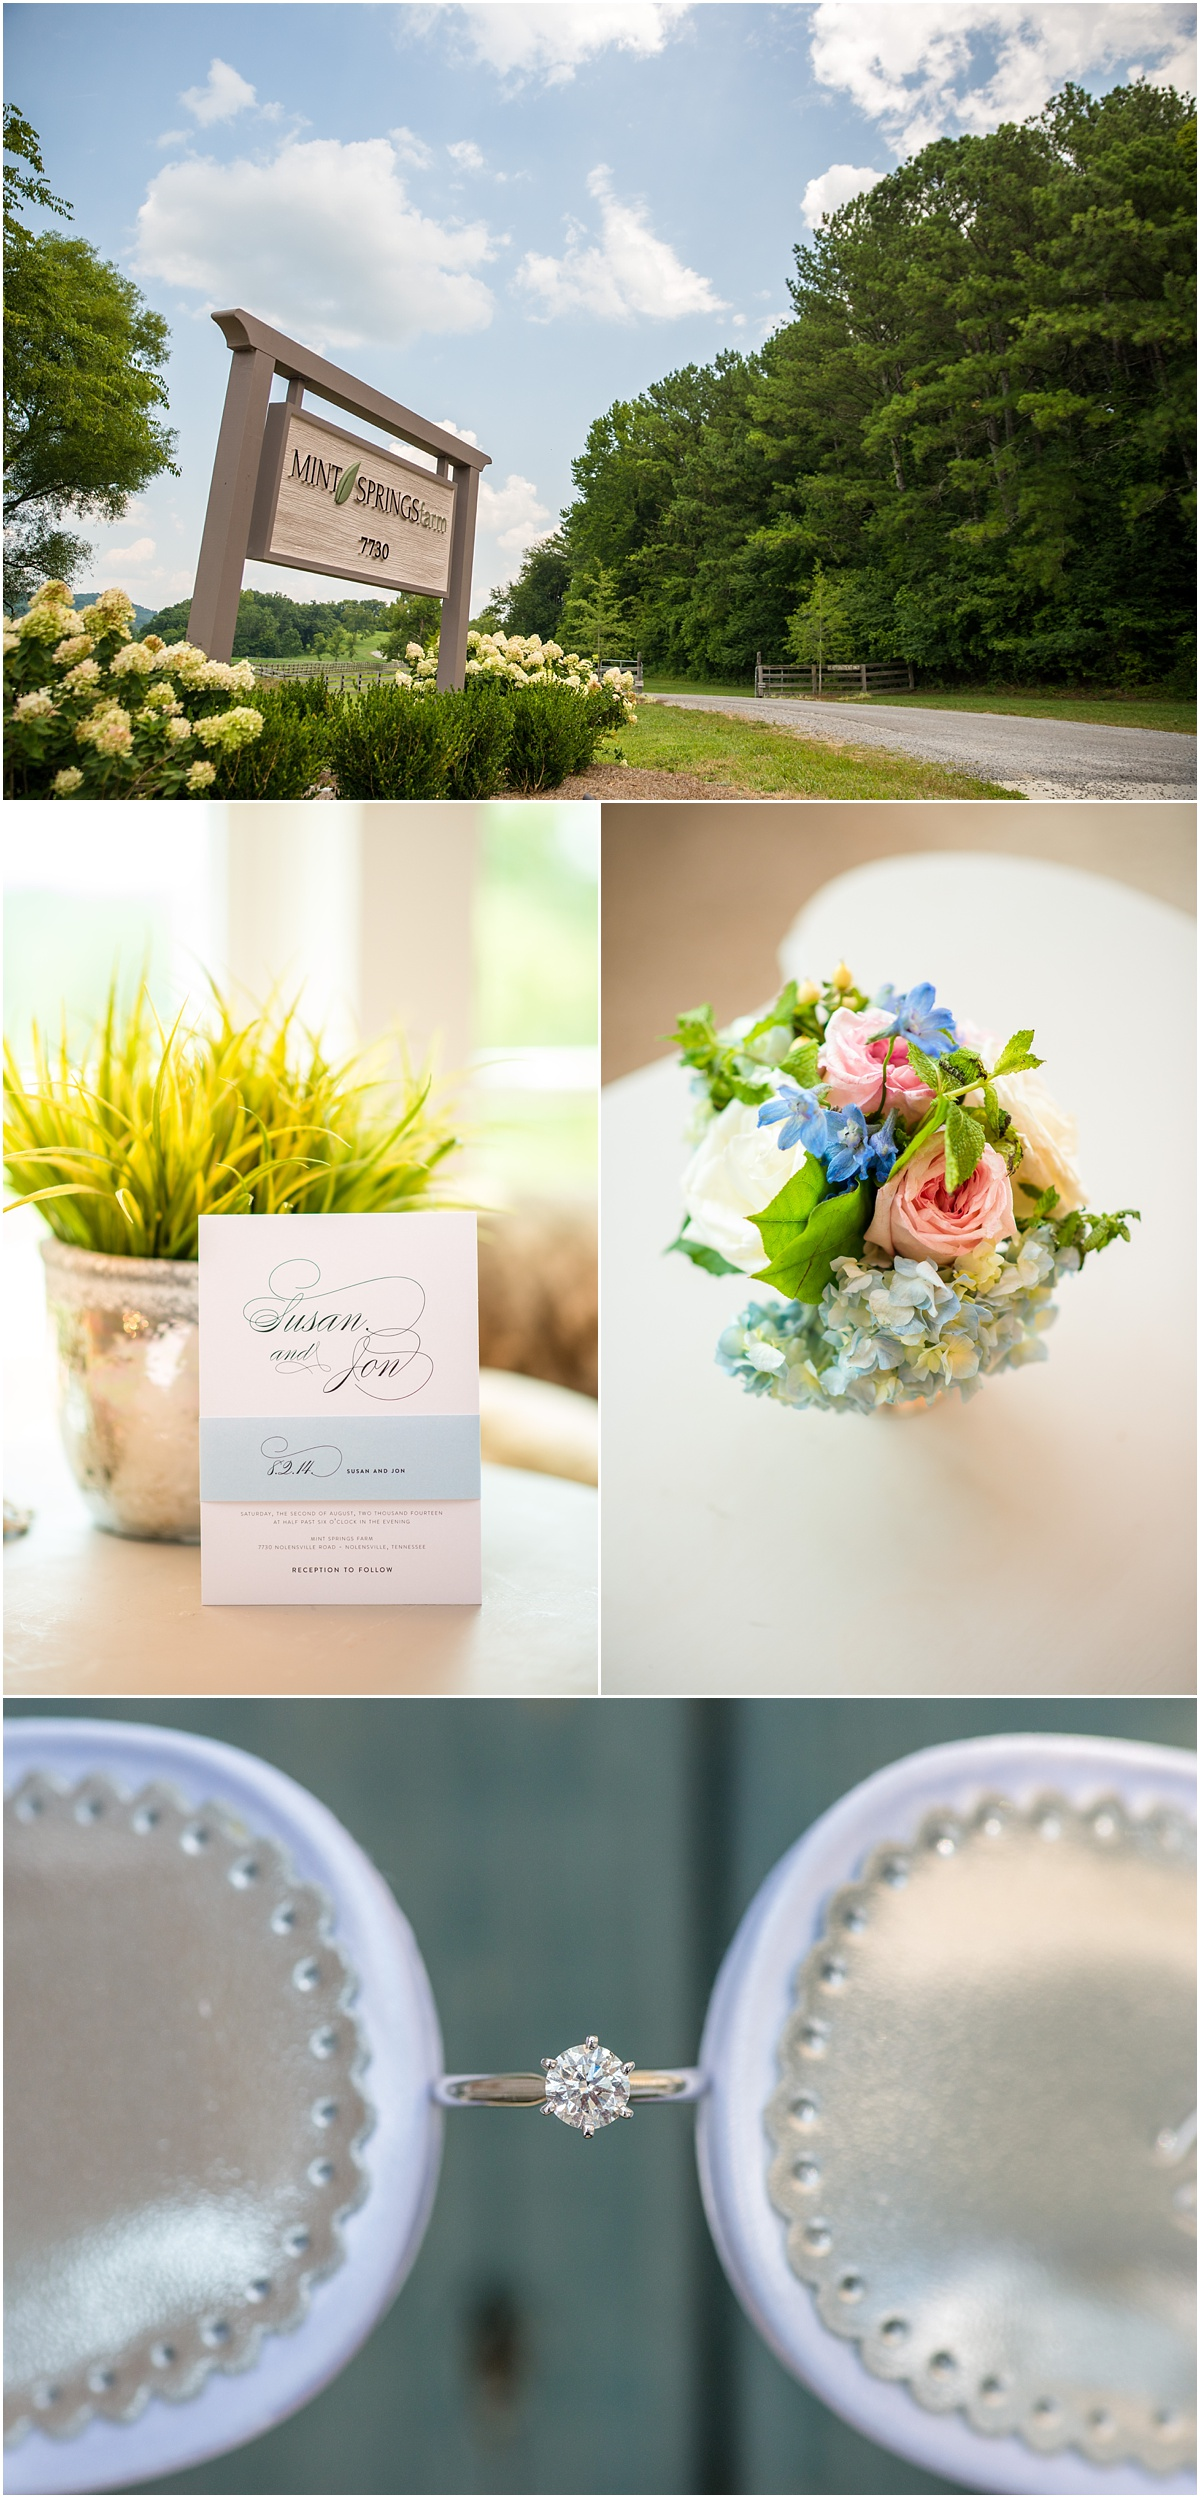 Greg Smit Photography Nashville wedding photographer Mint Springs Farm1